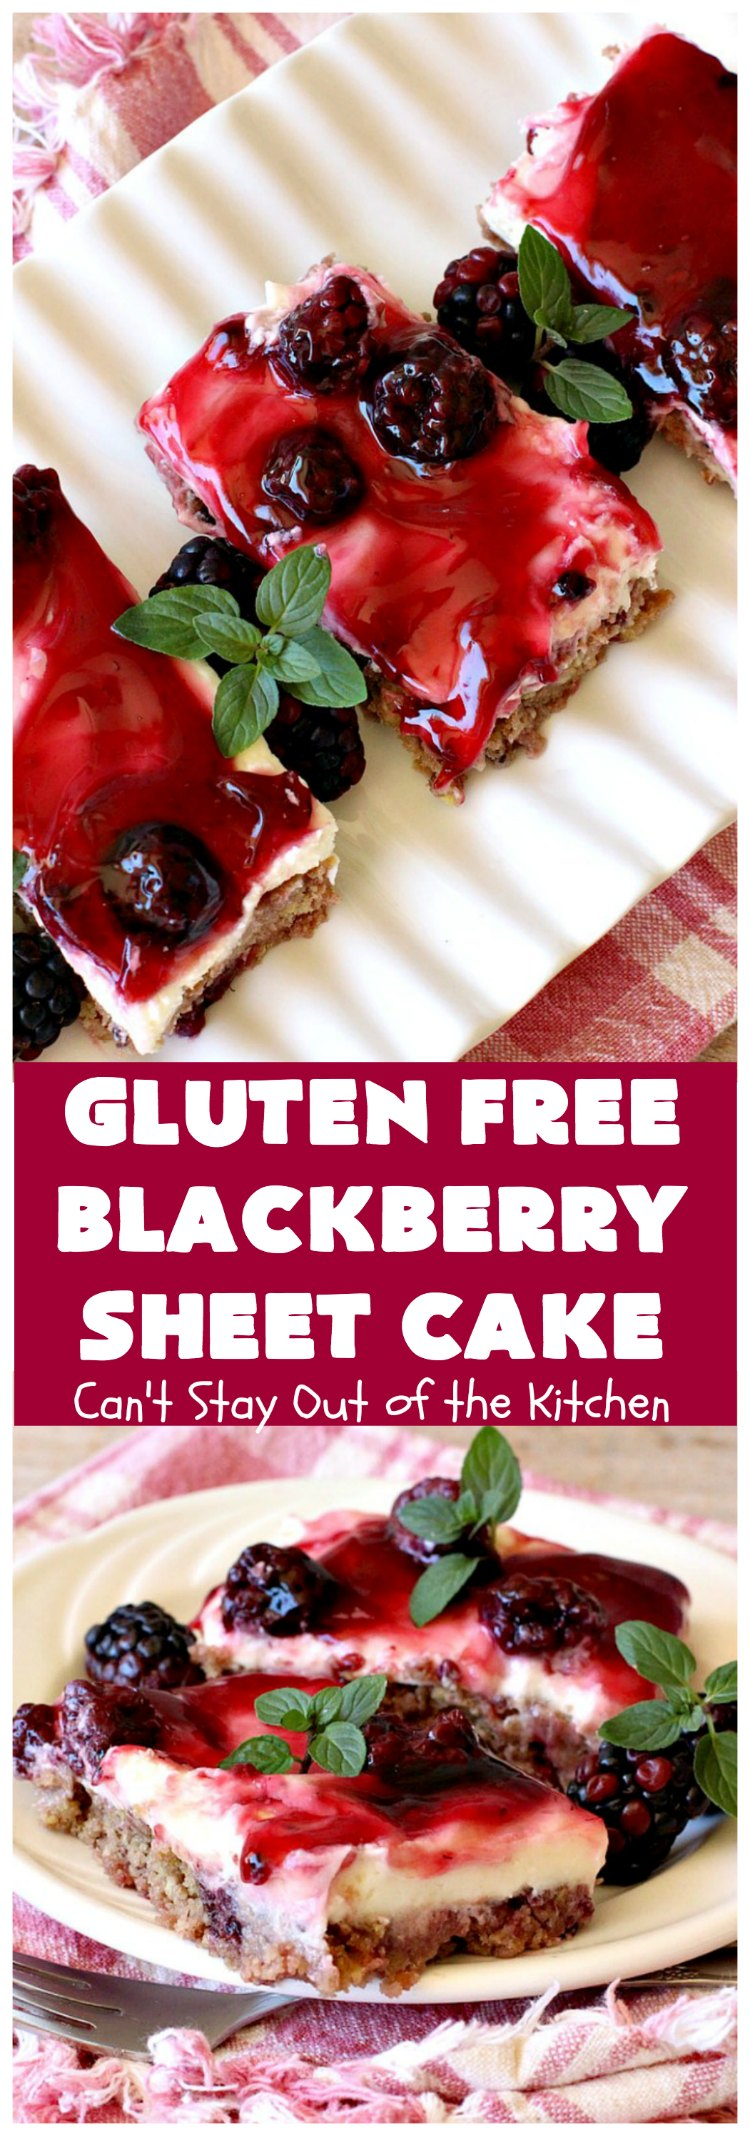 Gluten Free Blackberry Sheet Cake | Can't Stay Out of the Kitchen | your family will never believe this spectacular #cake is #GlutenFree! It's made with #BlackberryPieFilling & has a #CreamCheese icing to die for. Great for the #holidays. #dessert #SheetCake #HolidayDessert #GlutenFreeBlackberrySheetCake